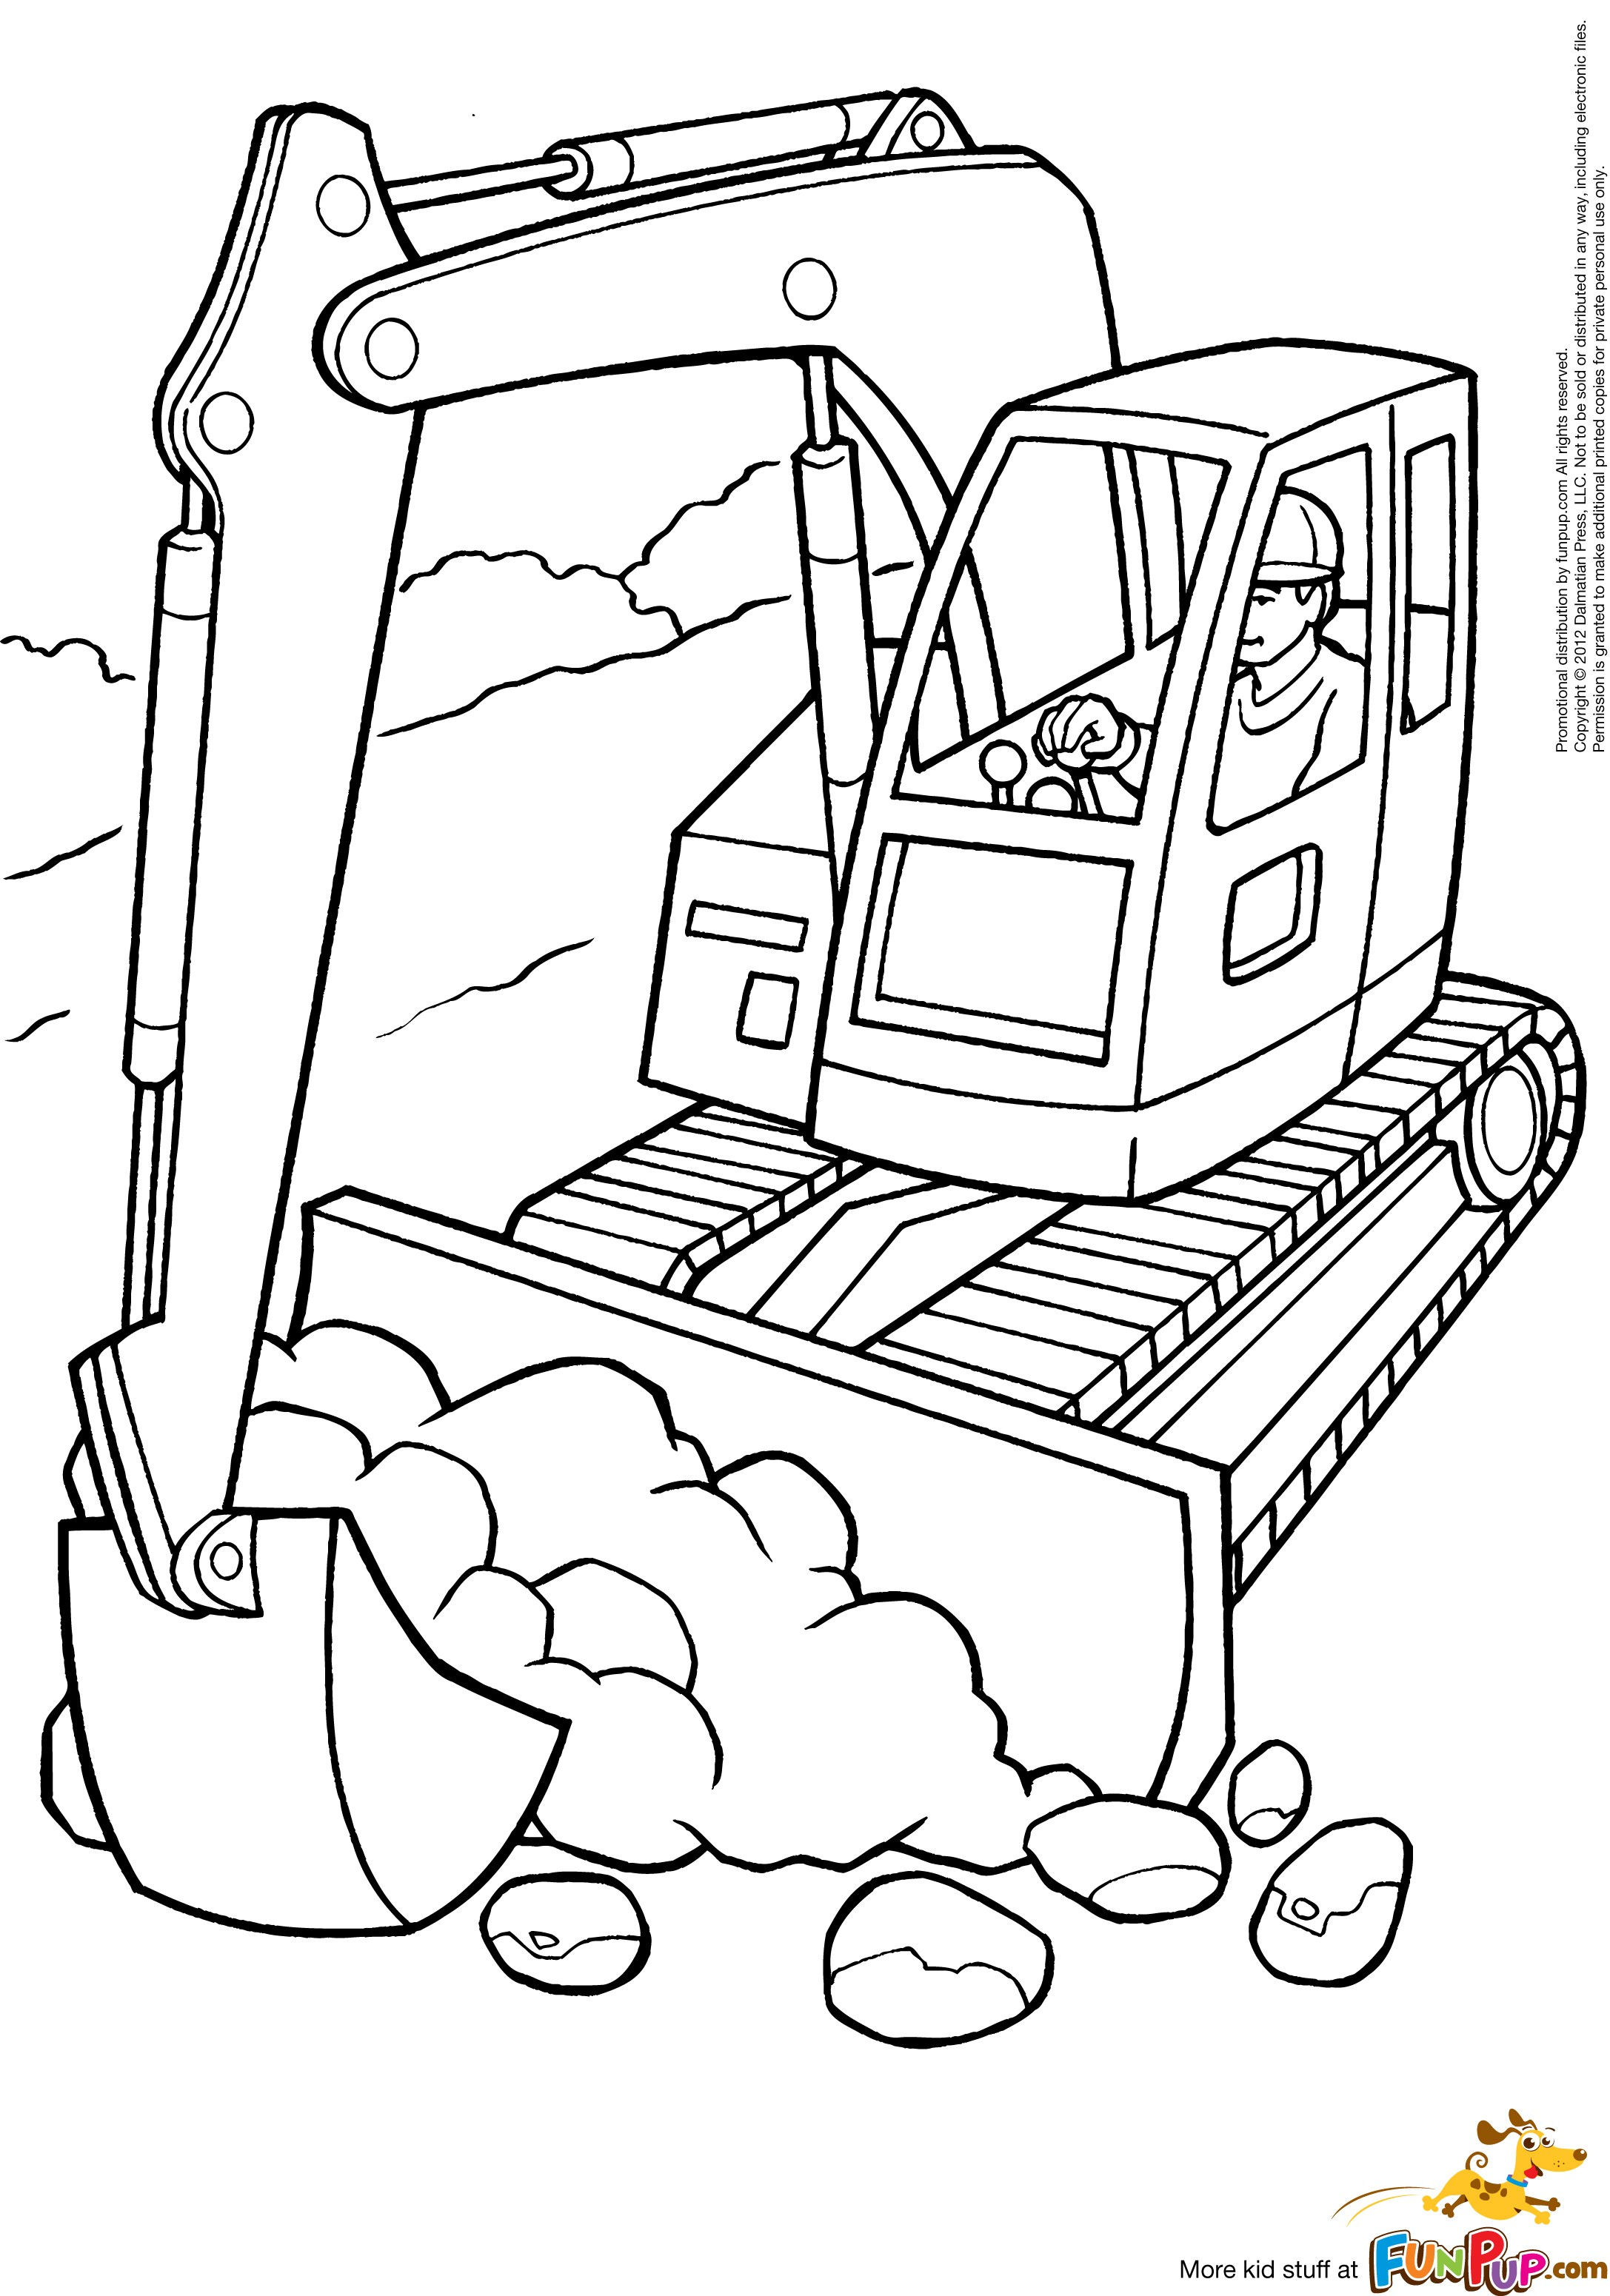 excavator coloring pages to print - photo#3